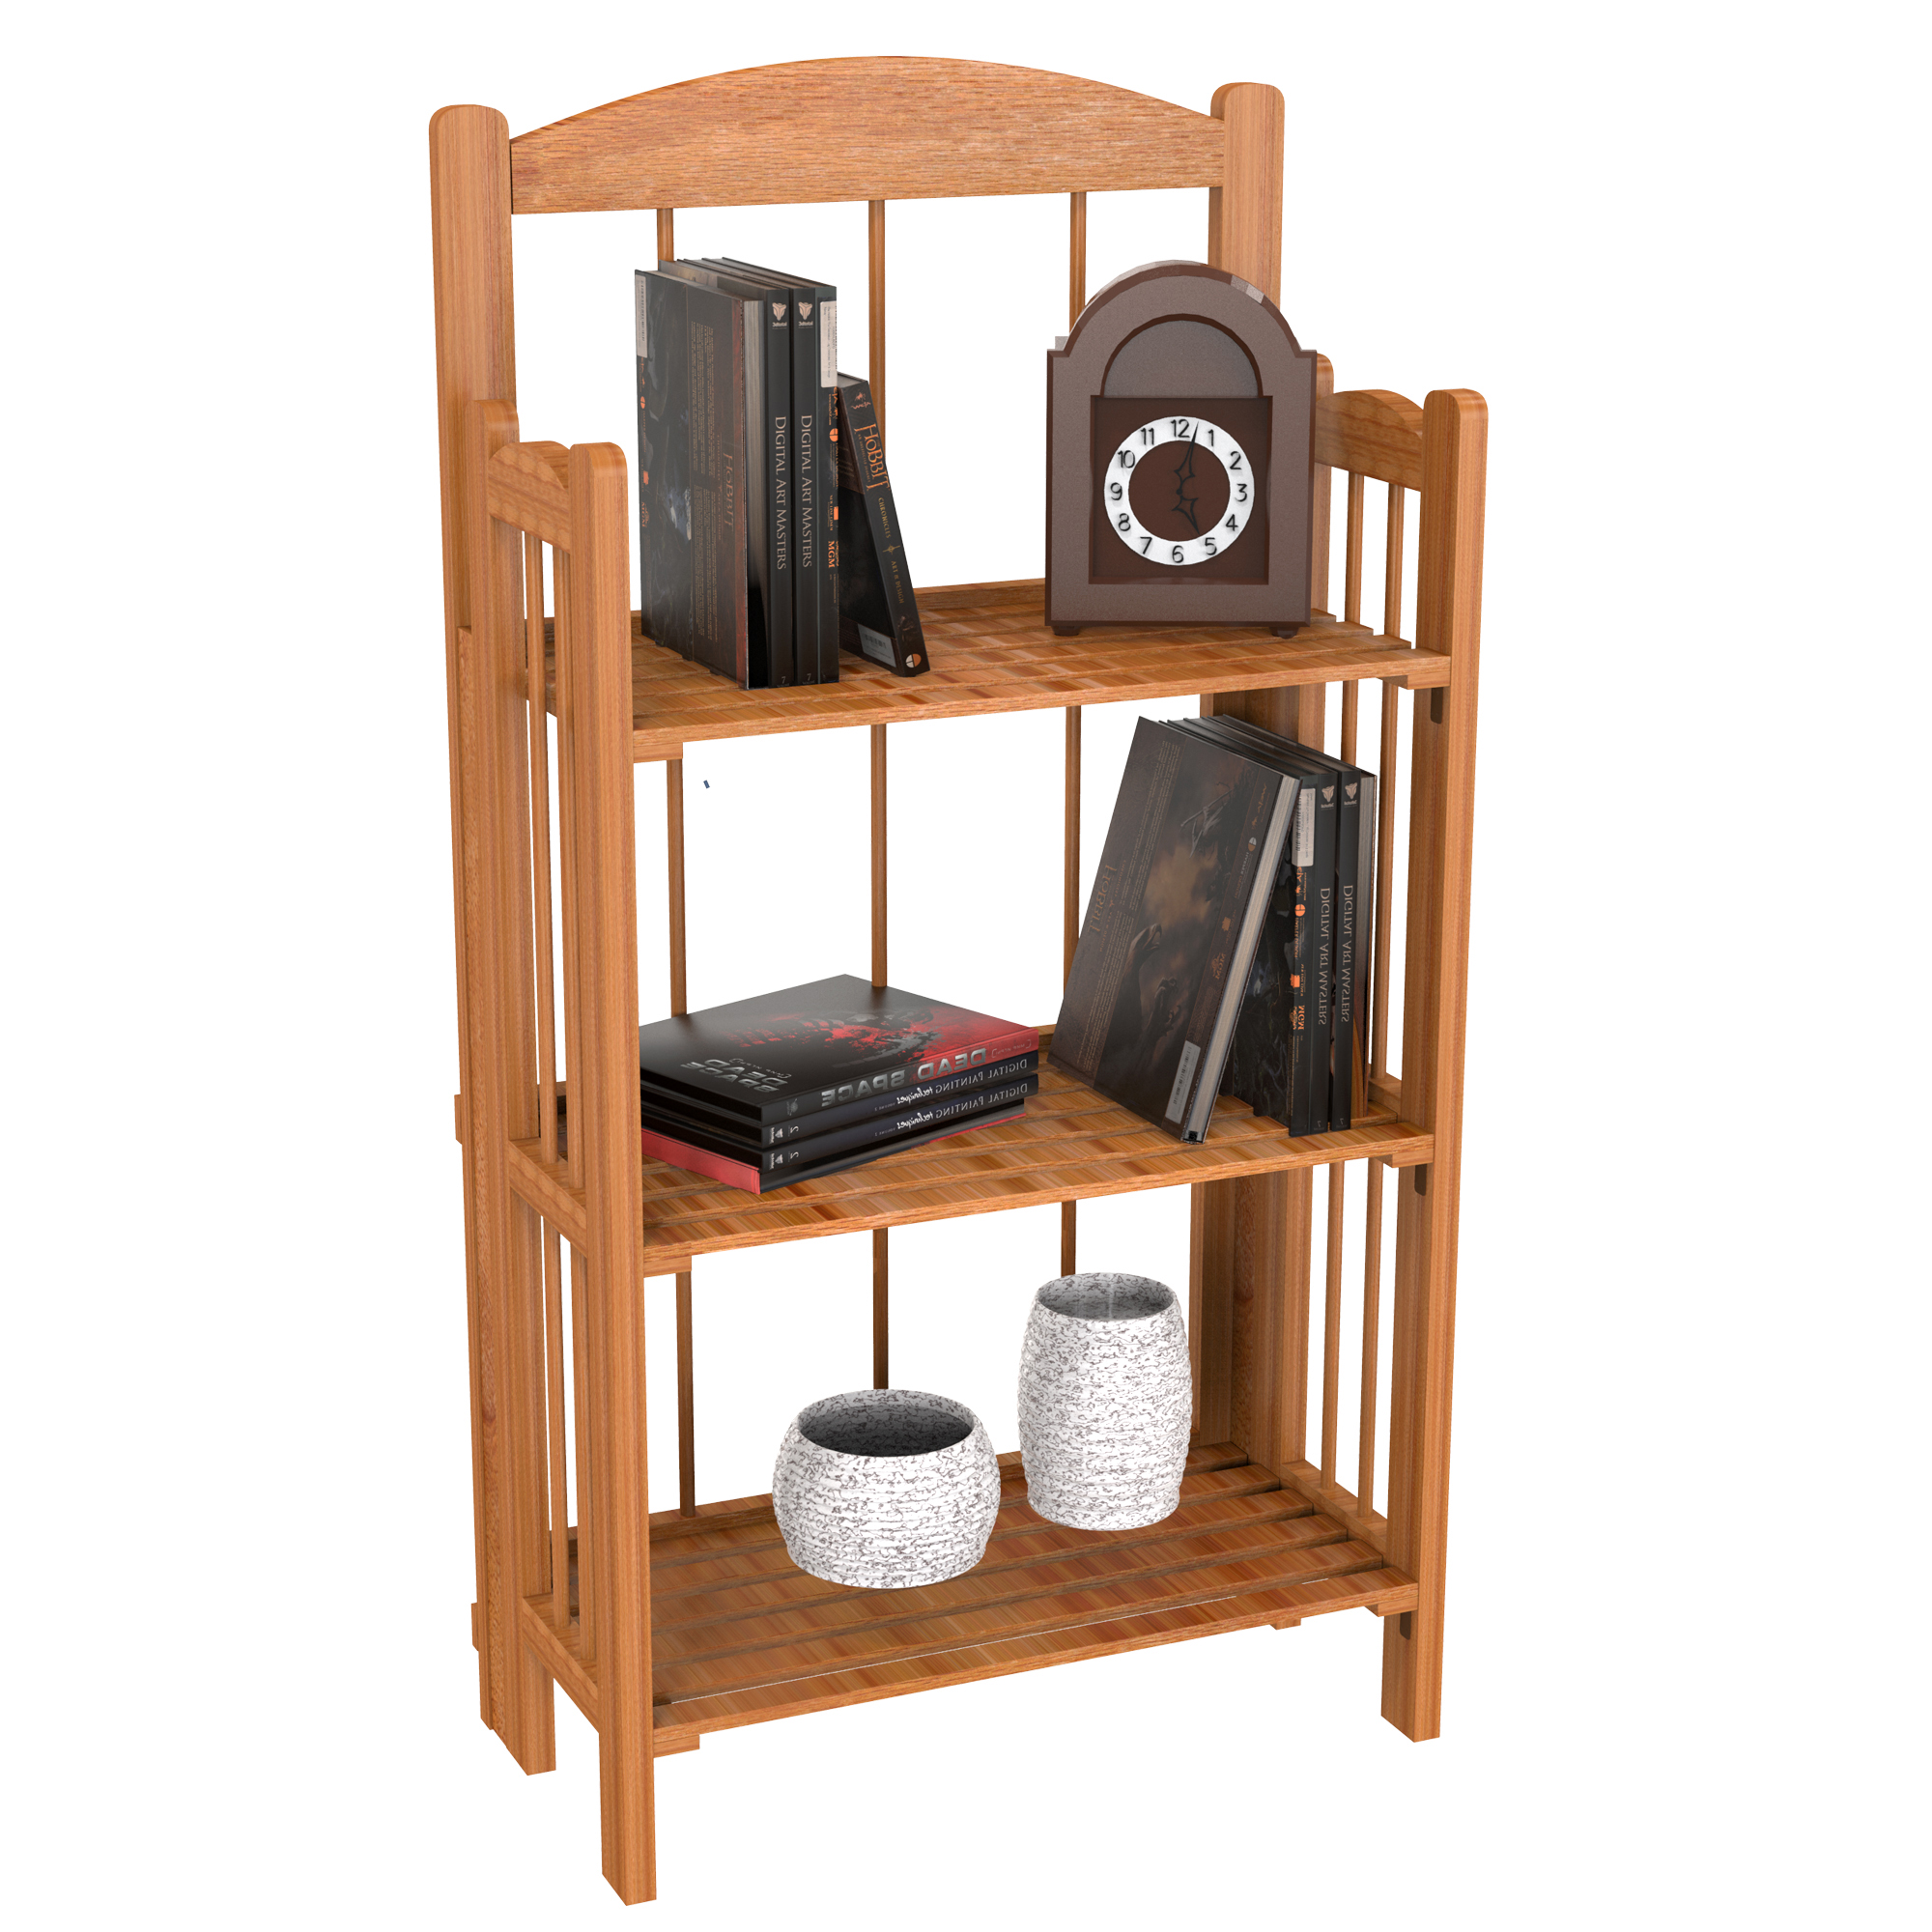 Bookcase for Decoration, Home Shelving, and Organization by Lavish Home- 3 Shelf, Folding Wood Display Rack for Home and Office (Light Brown)